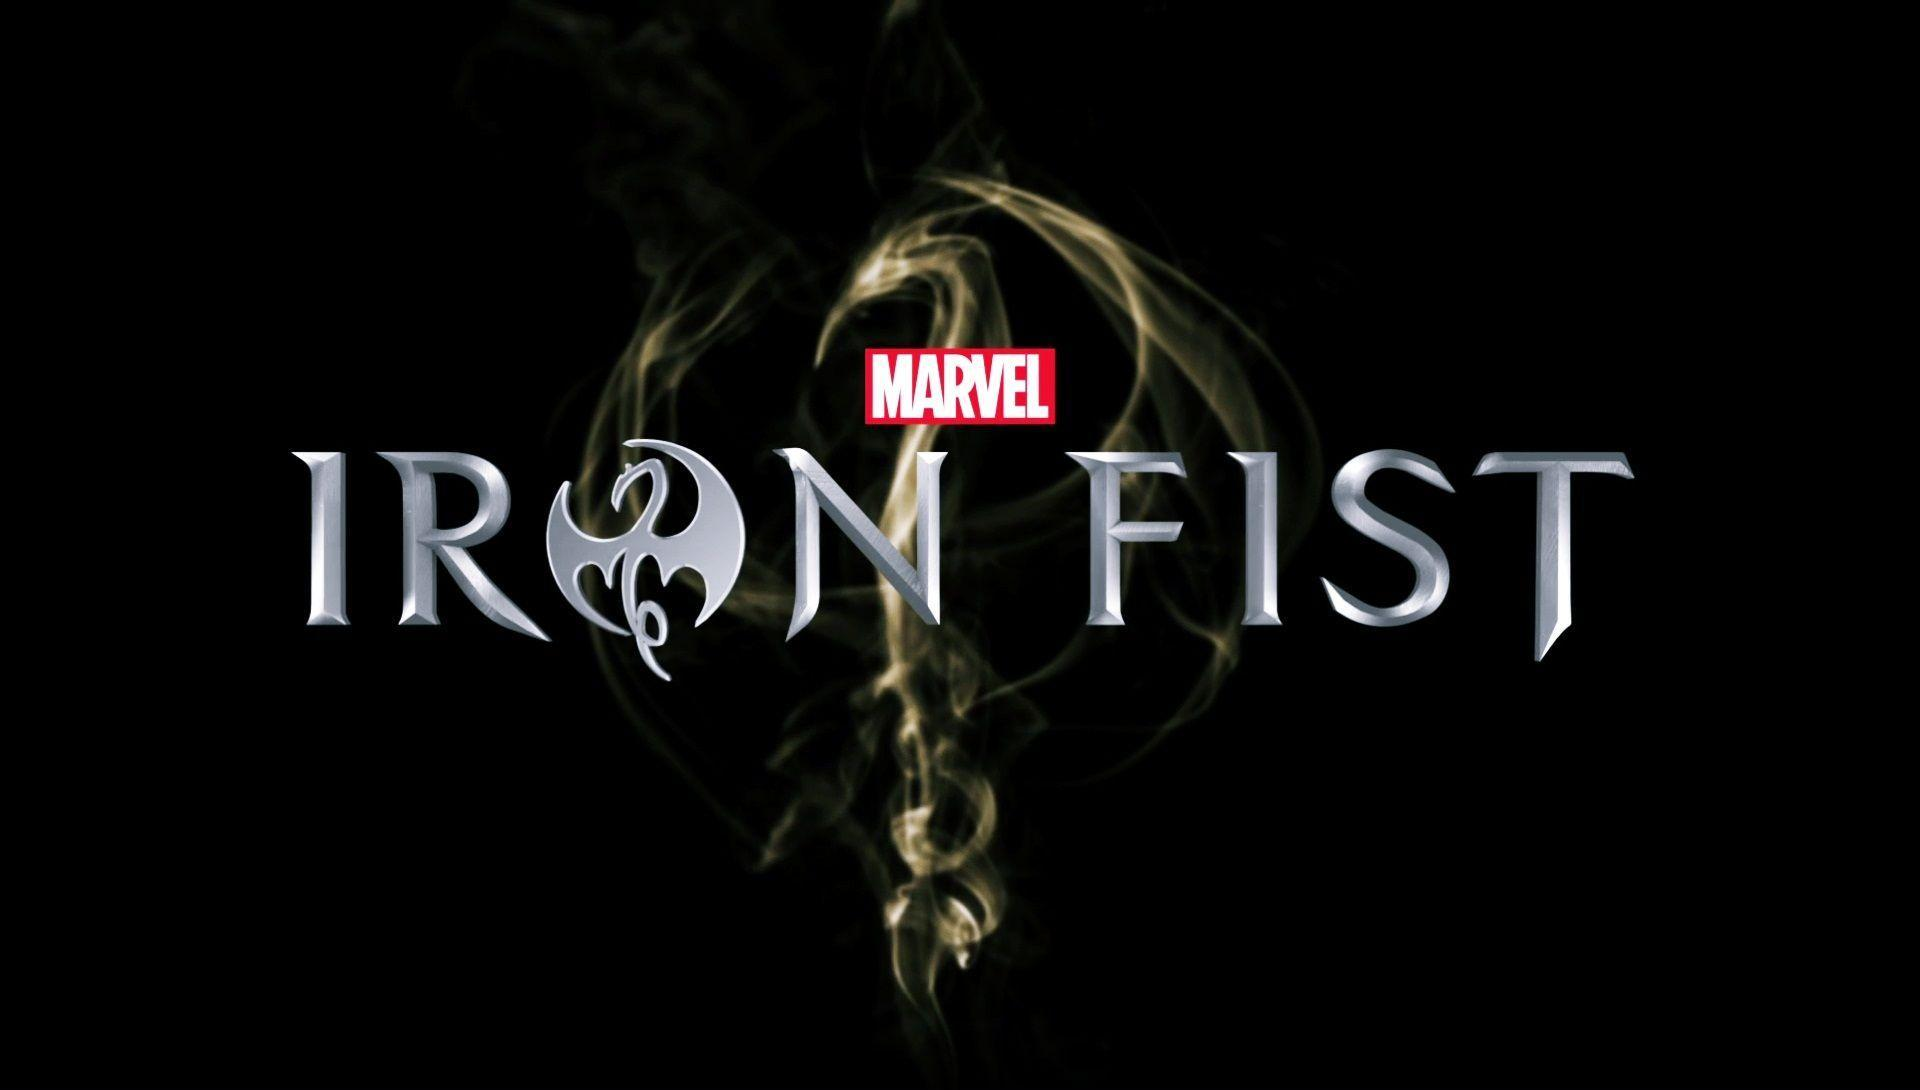 Iron Fist Wallpapers HD Backgrounds, Images, Pics, Photos Free ...